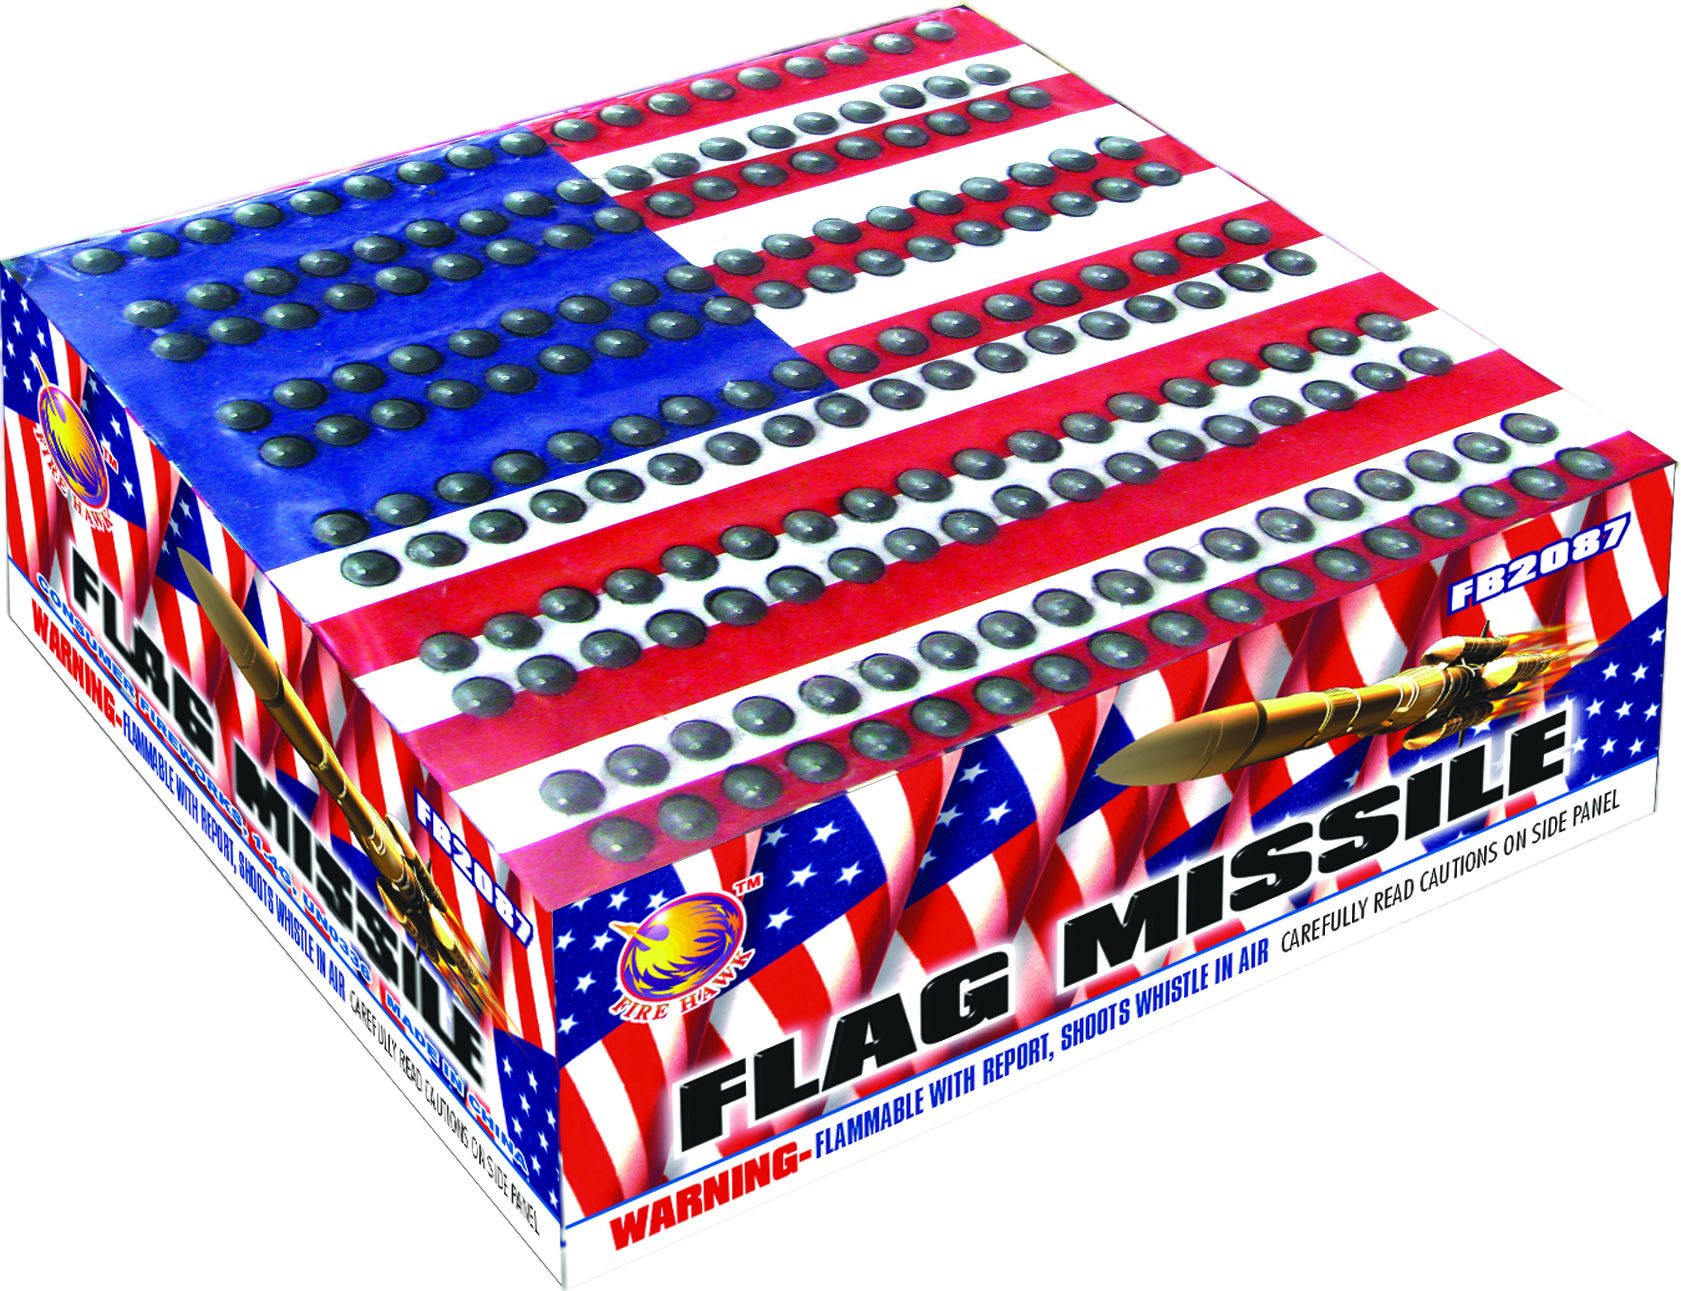 FB2087 Flag Missile